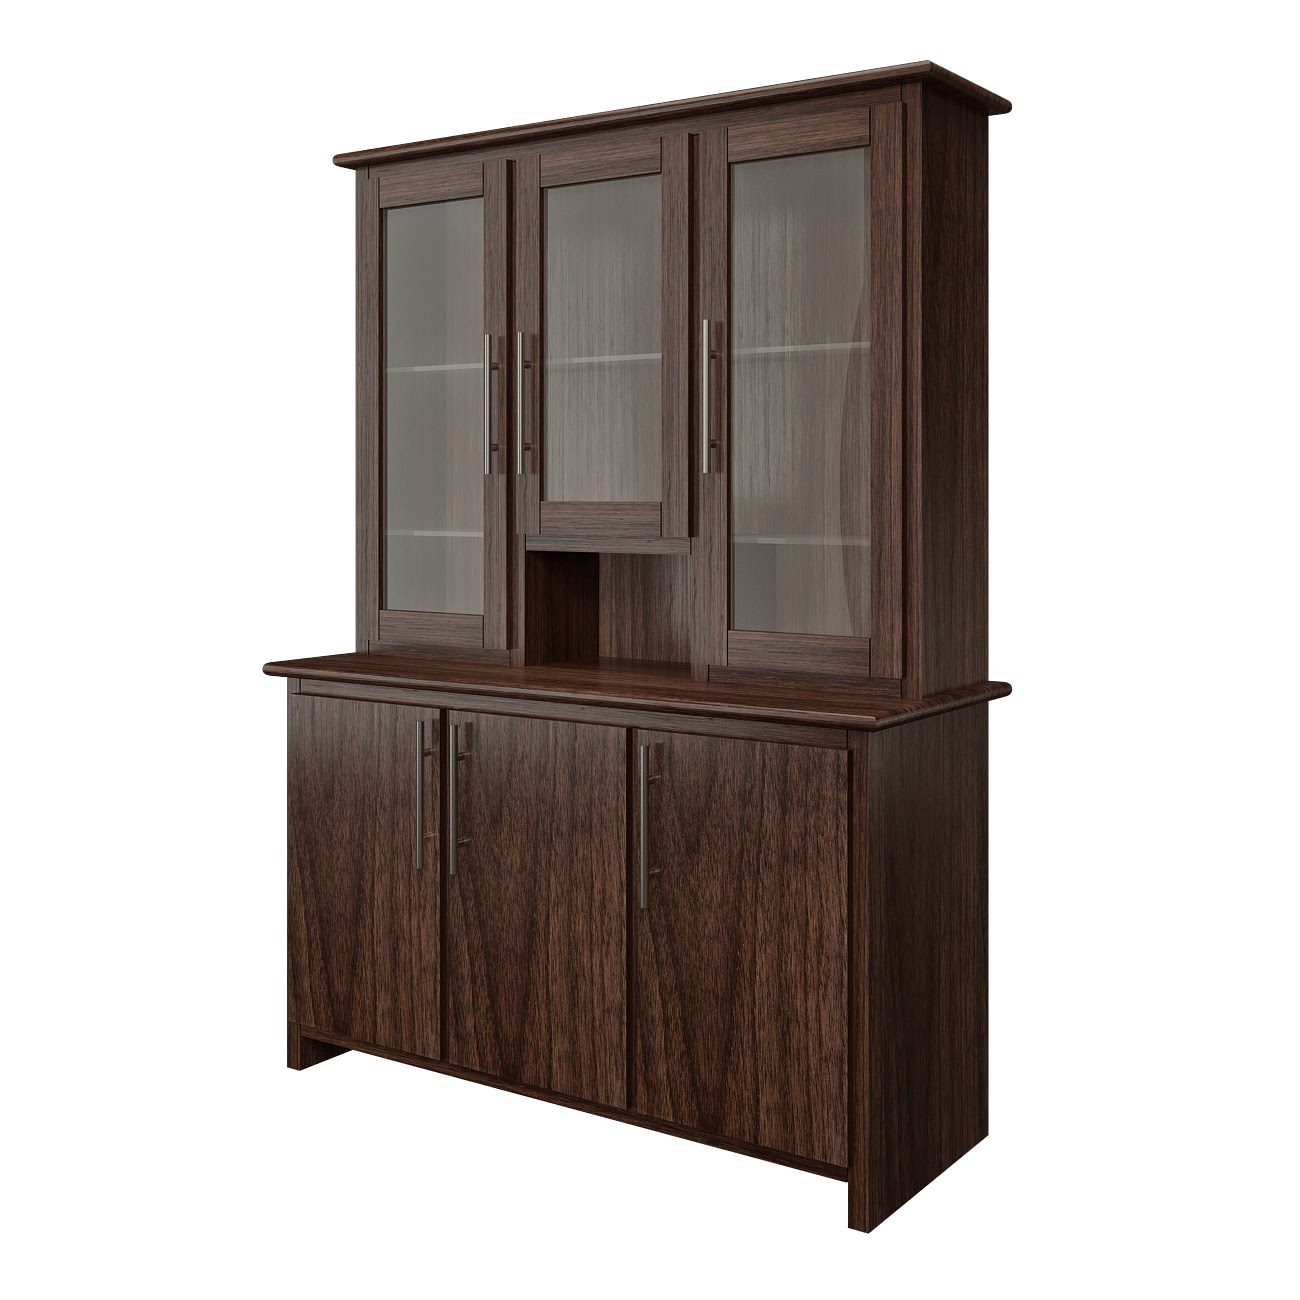 Waterfall China Cabinets | China Cabinet in the Waterfall Style